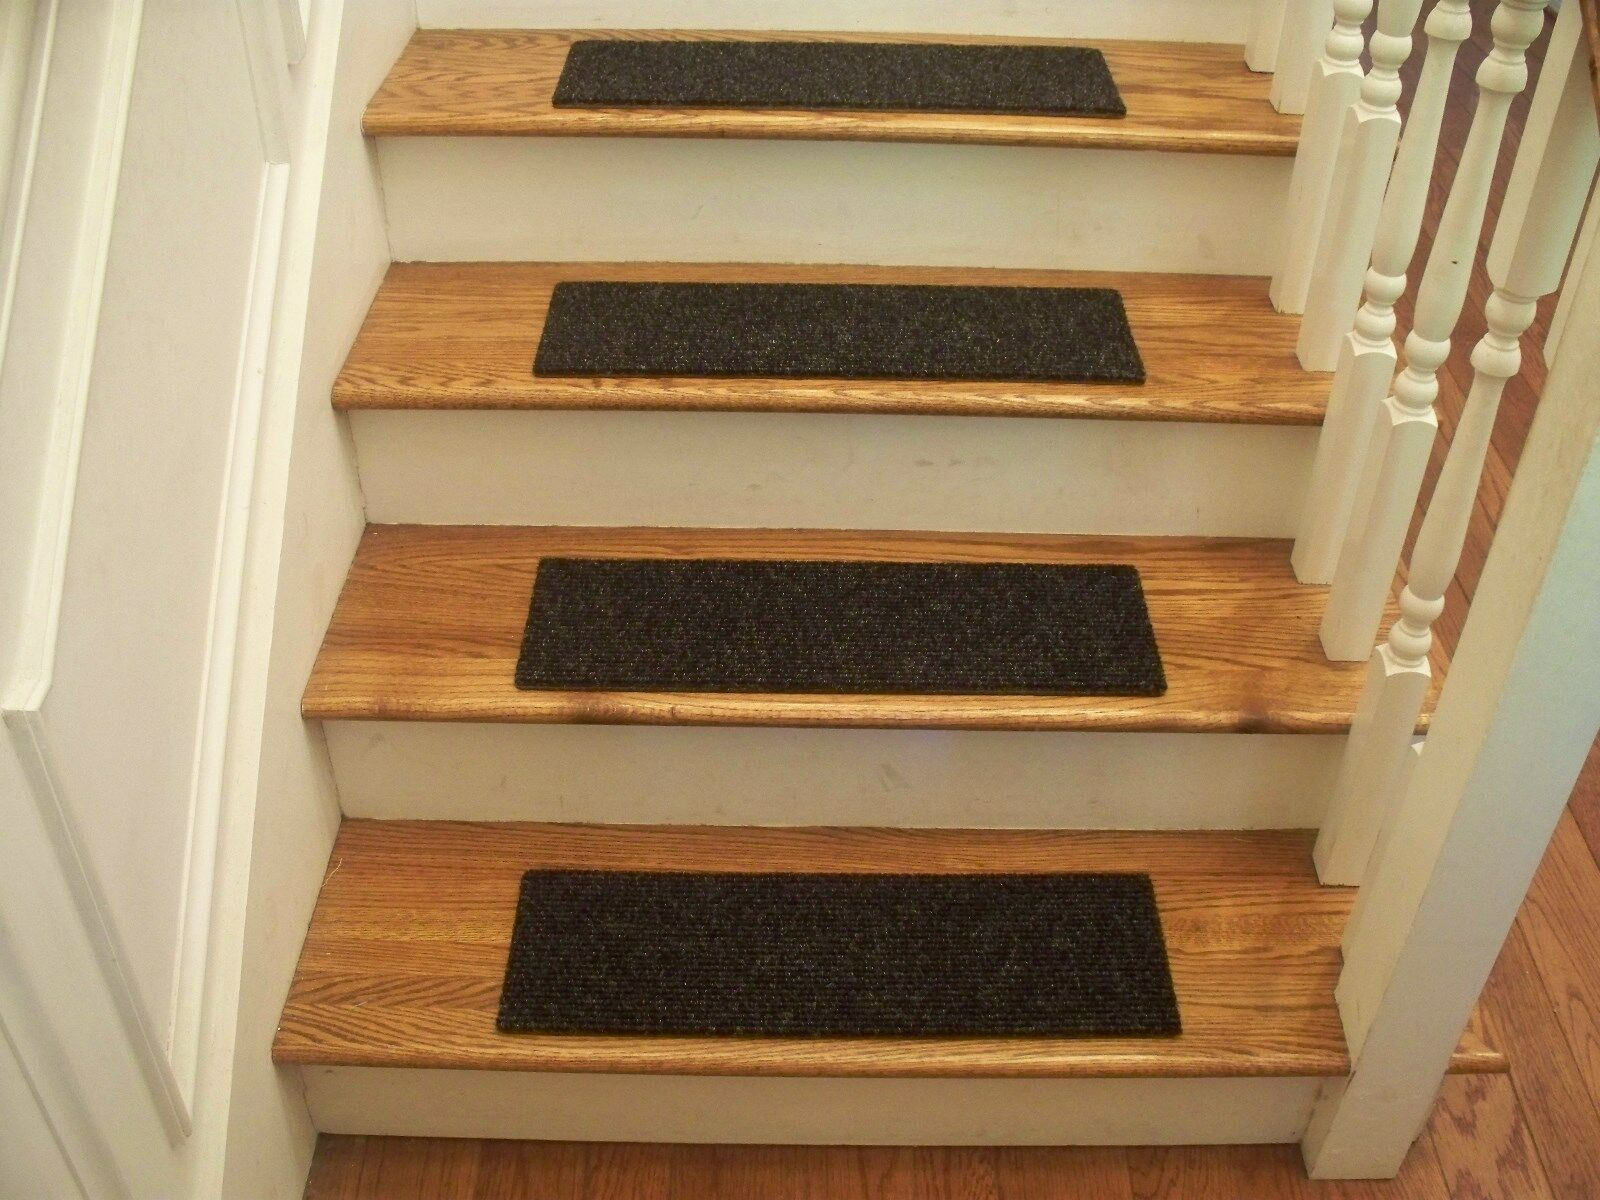 Premium Carpet Stair Stair Stair Tread Sets - Object Charcoal - 30  x 8  084c40